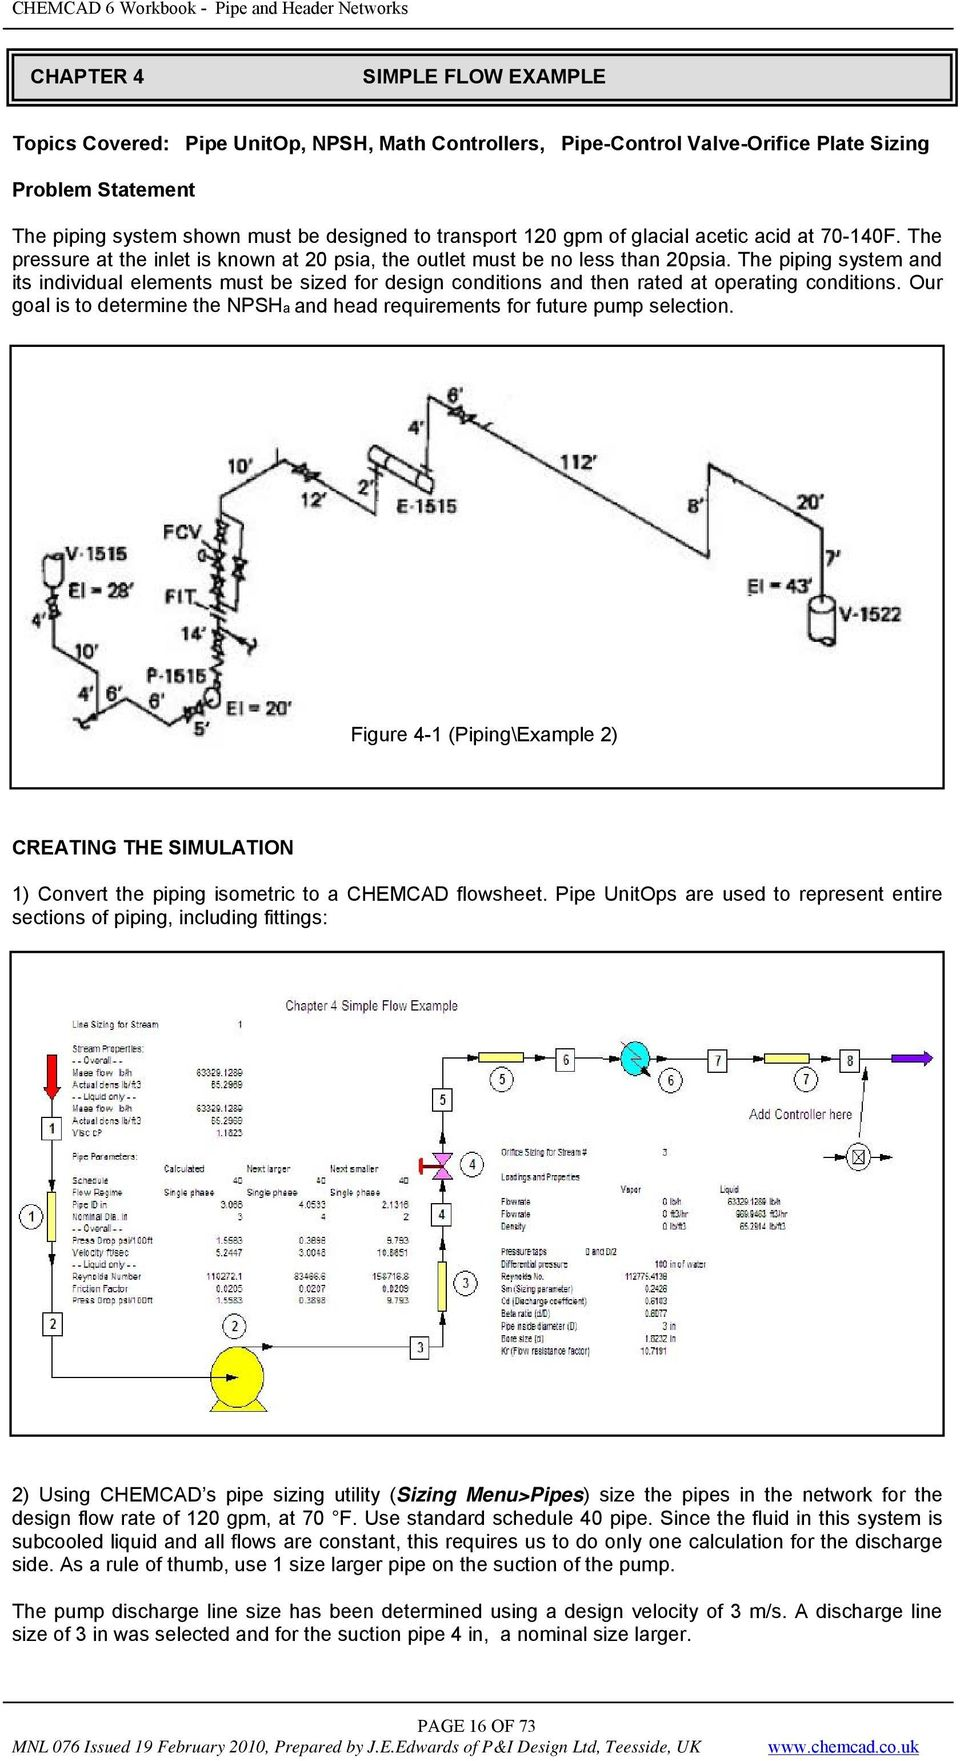 Piping Workbook Solving And Header Networks Using Chemcad Layout Concepts The System Its Individual Elements Must Be Sized For Design Conditions Then Rated